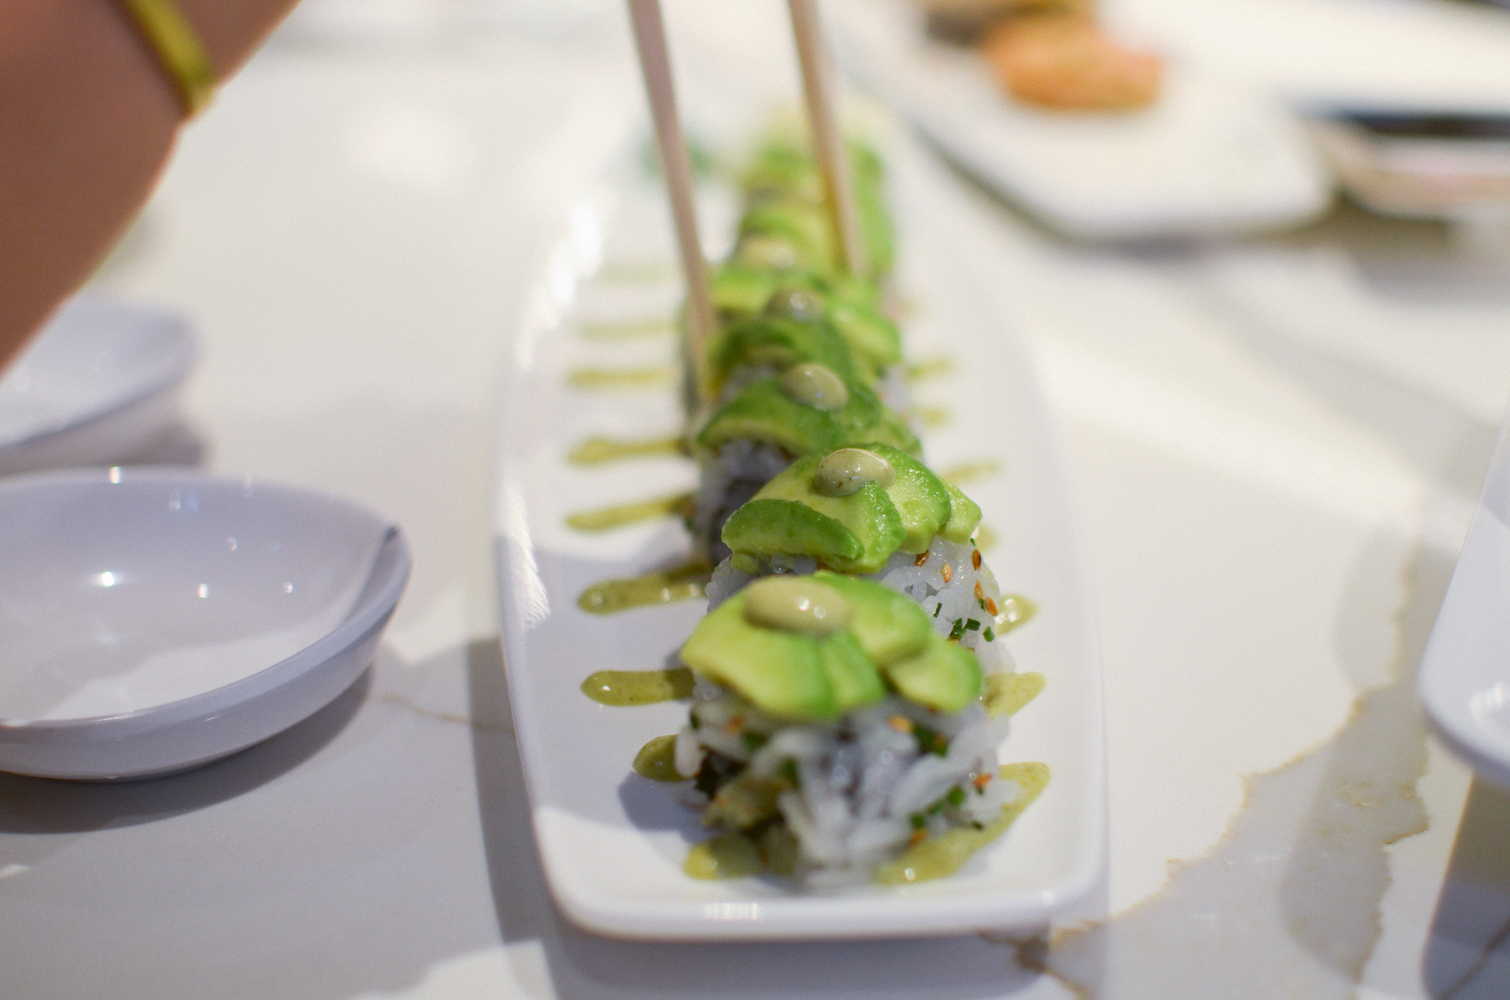 Sushi Station Park : Station sushi has been preparing the best sushi in san diego since 1998!